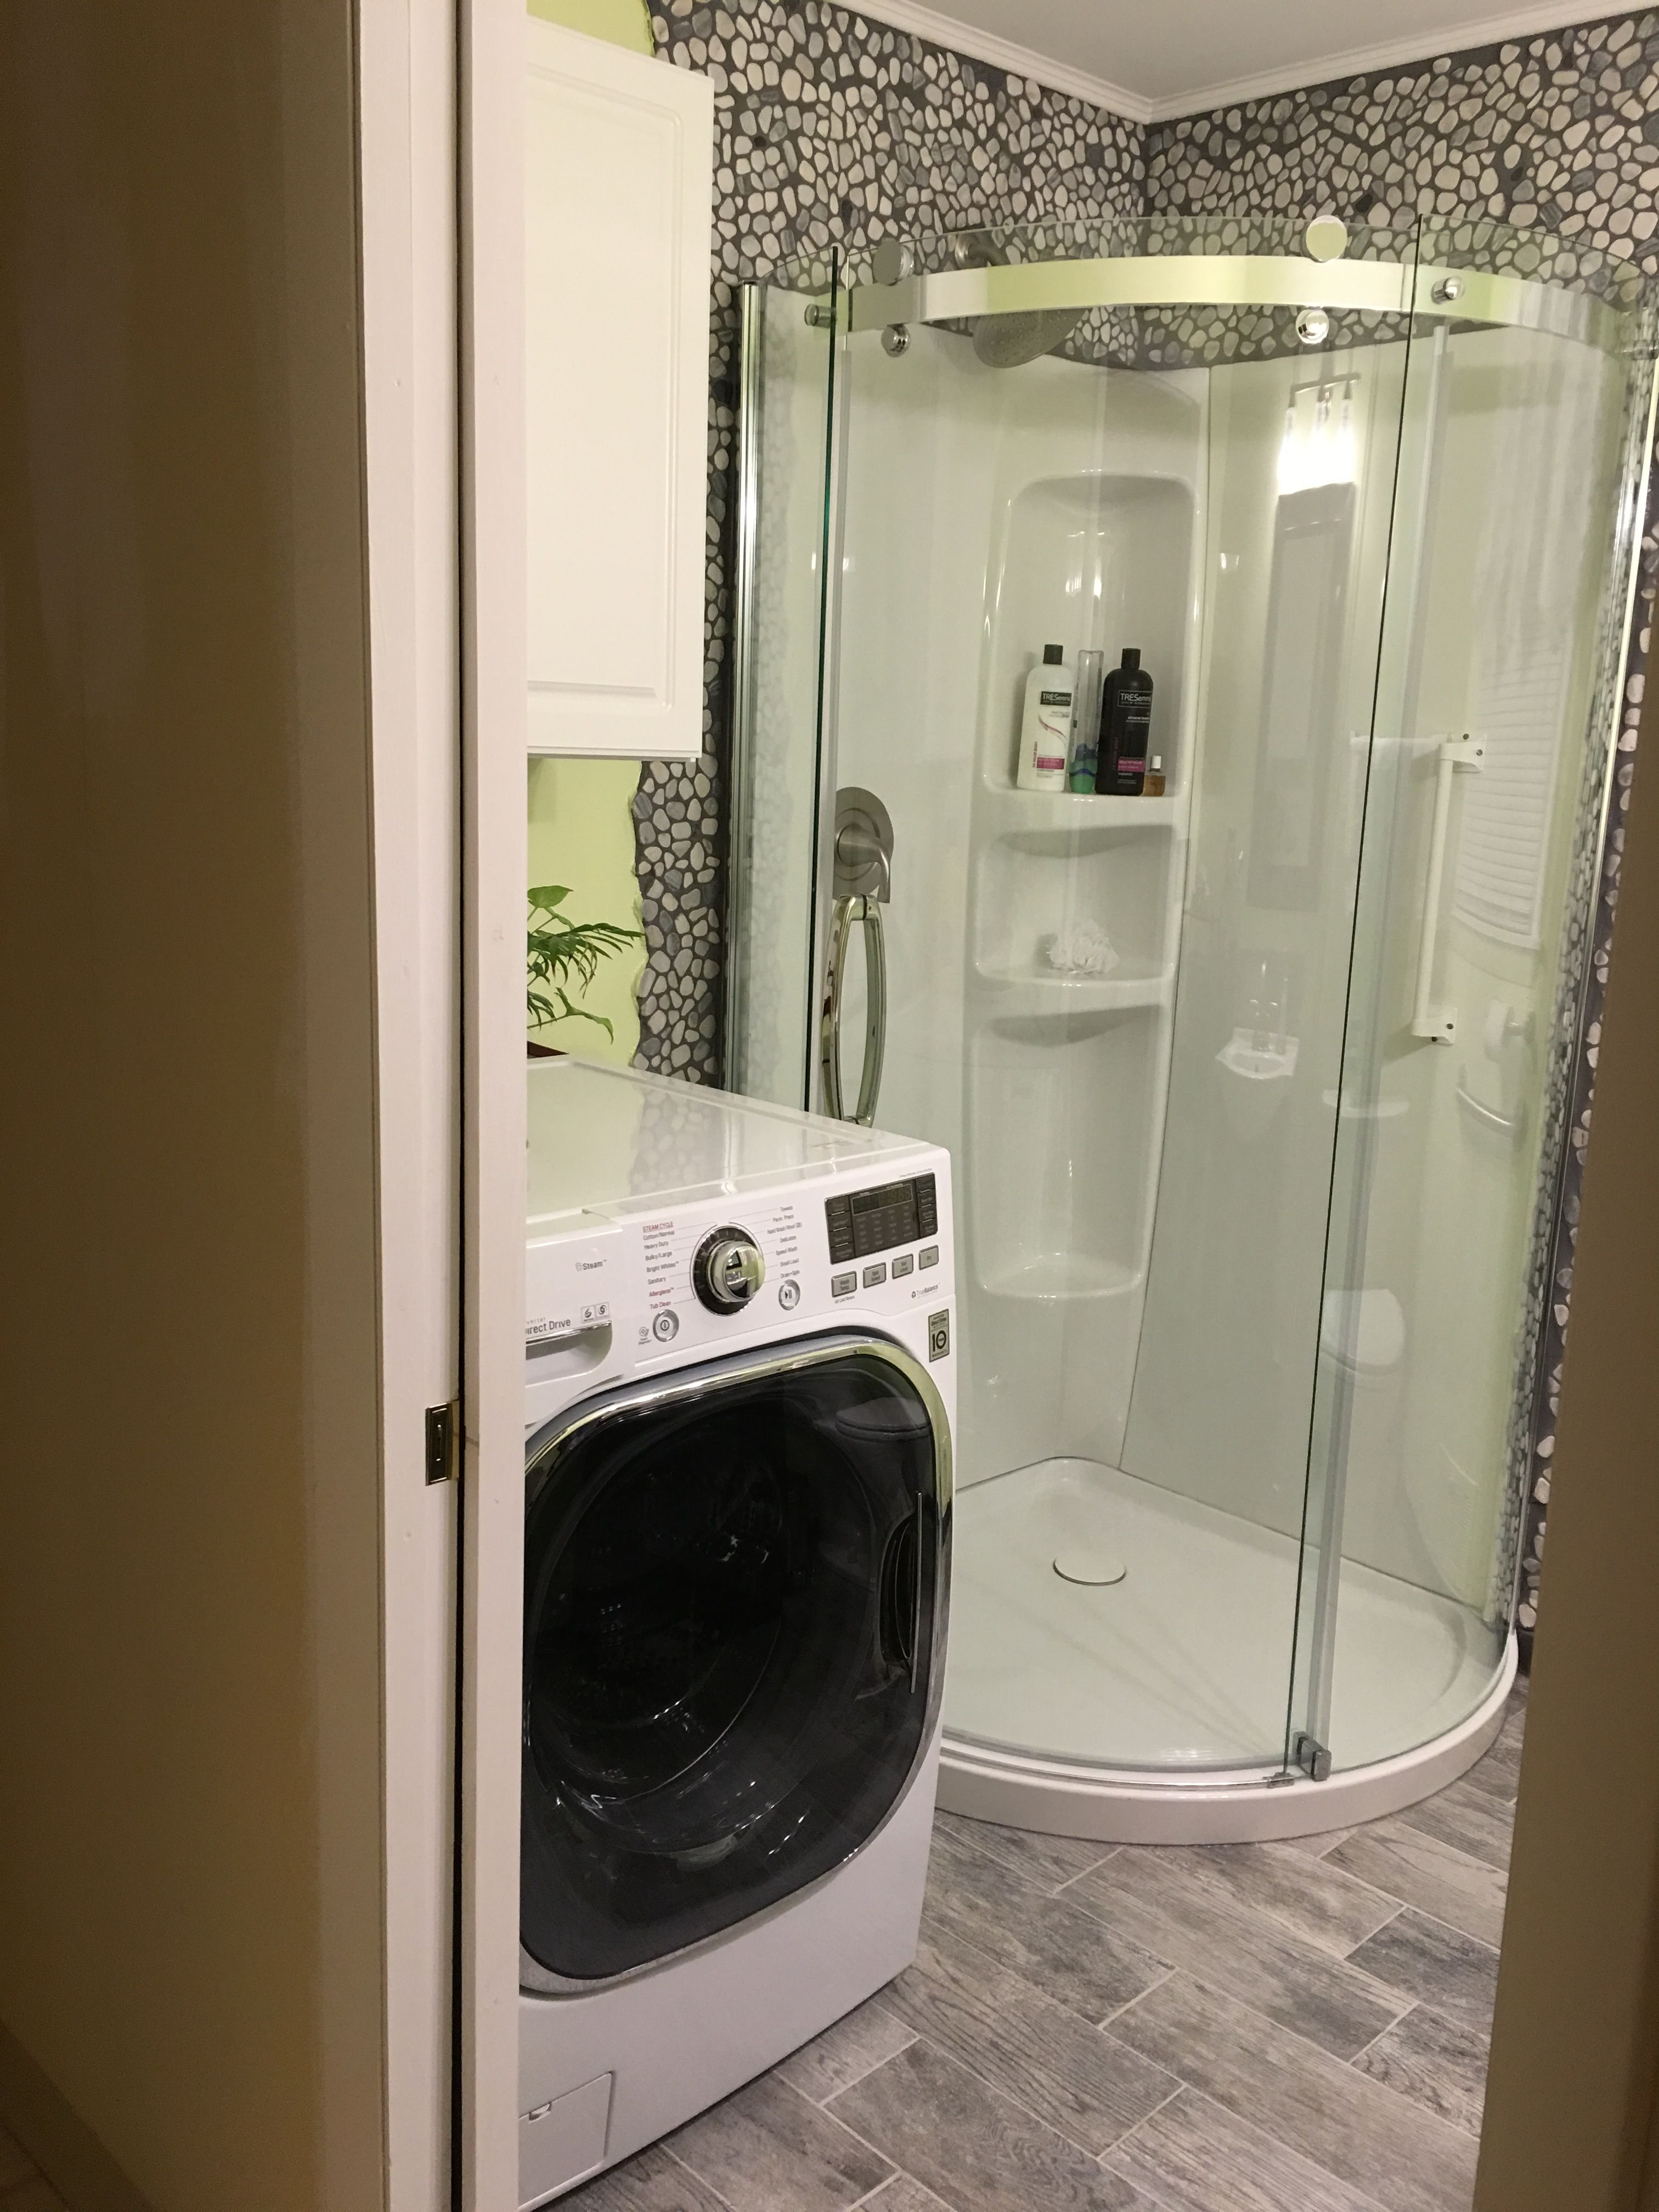 Lg Washer Dryer Combo Unit Is One Of The Greatest Inventions Ever It S Ventless And Only Required A N Build My Own House Lg Washer And Dryer Bathrooms Remodel